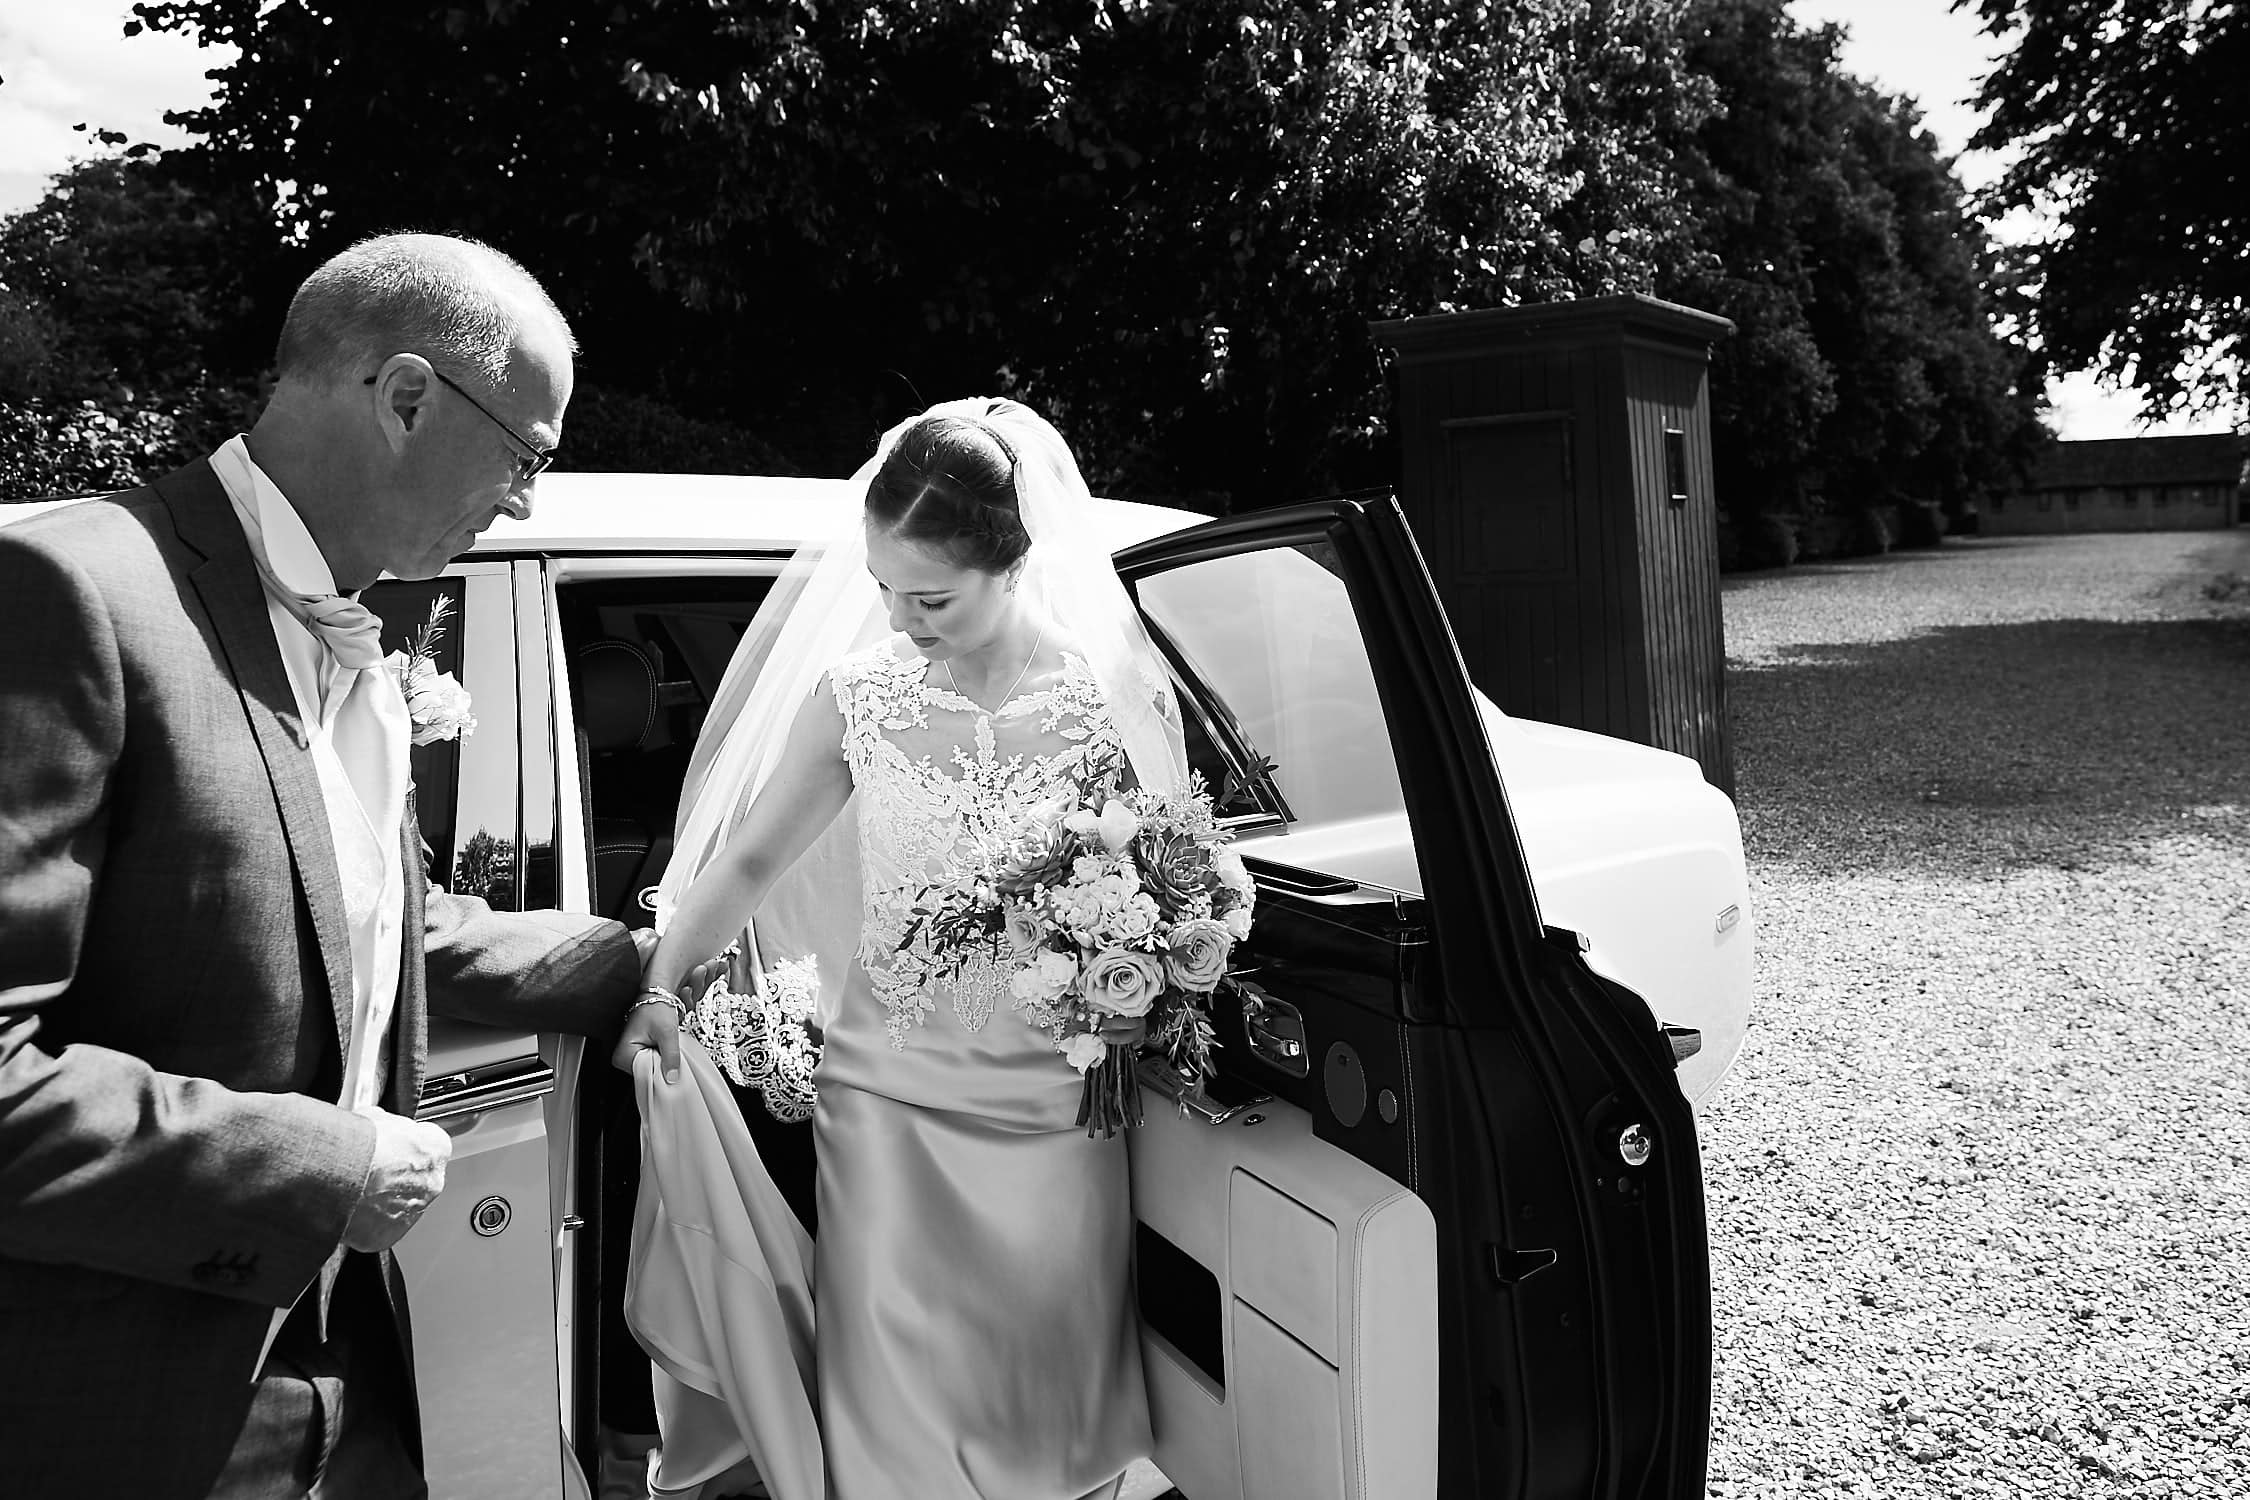 Bride leaving car on wedding day arrival